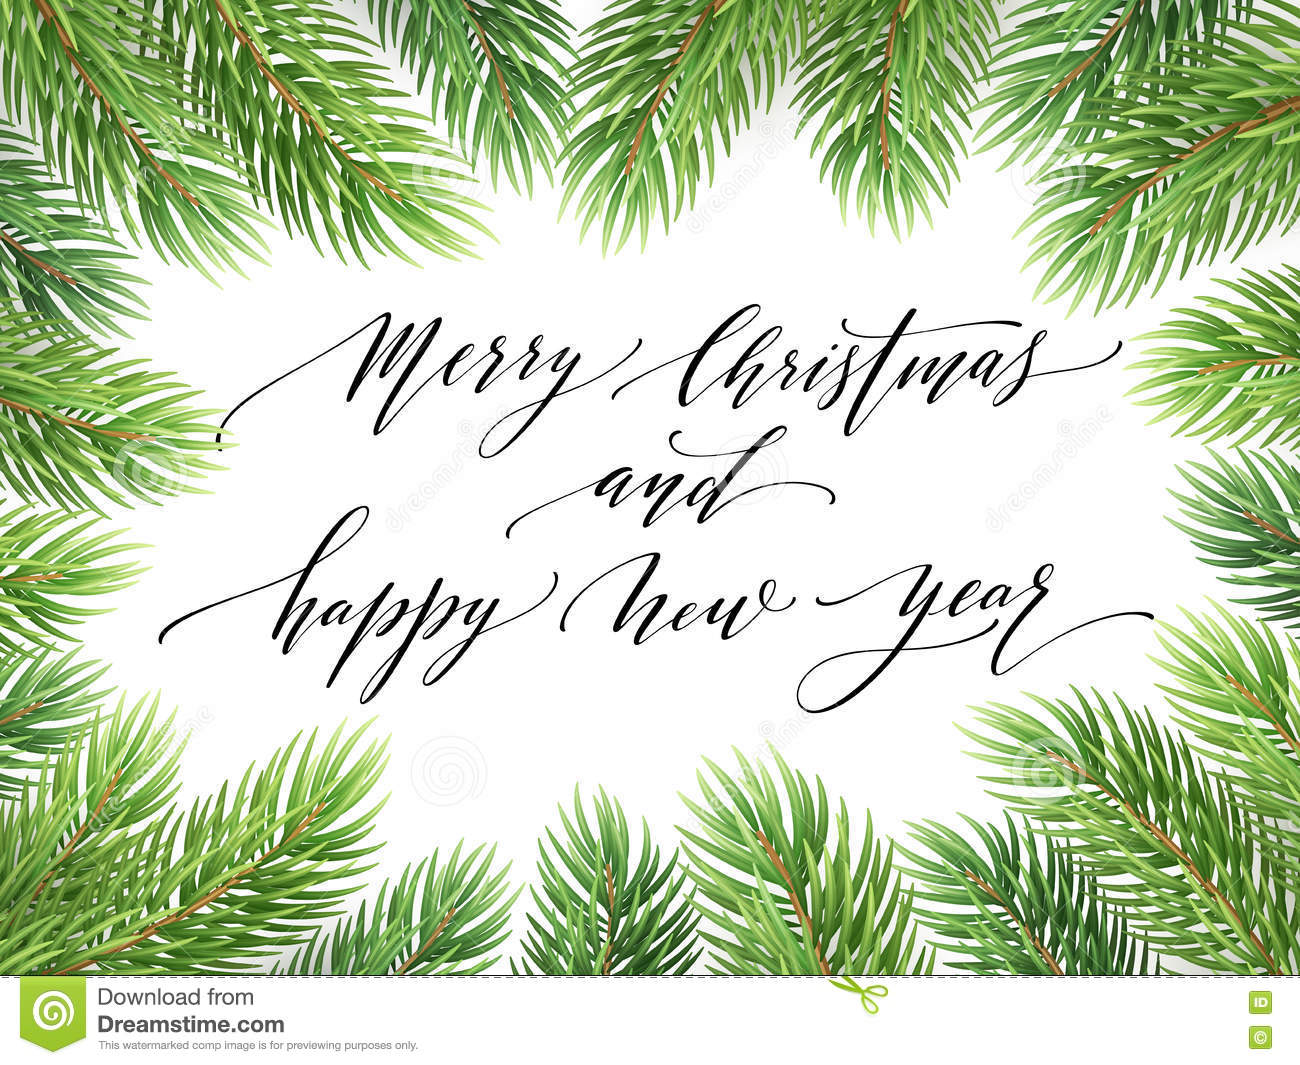 download merry christmas and happy new year 2017 greeting card vector illustration stock vector